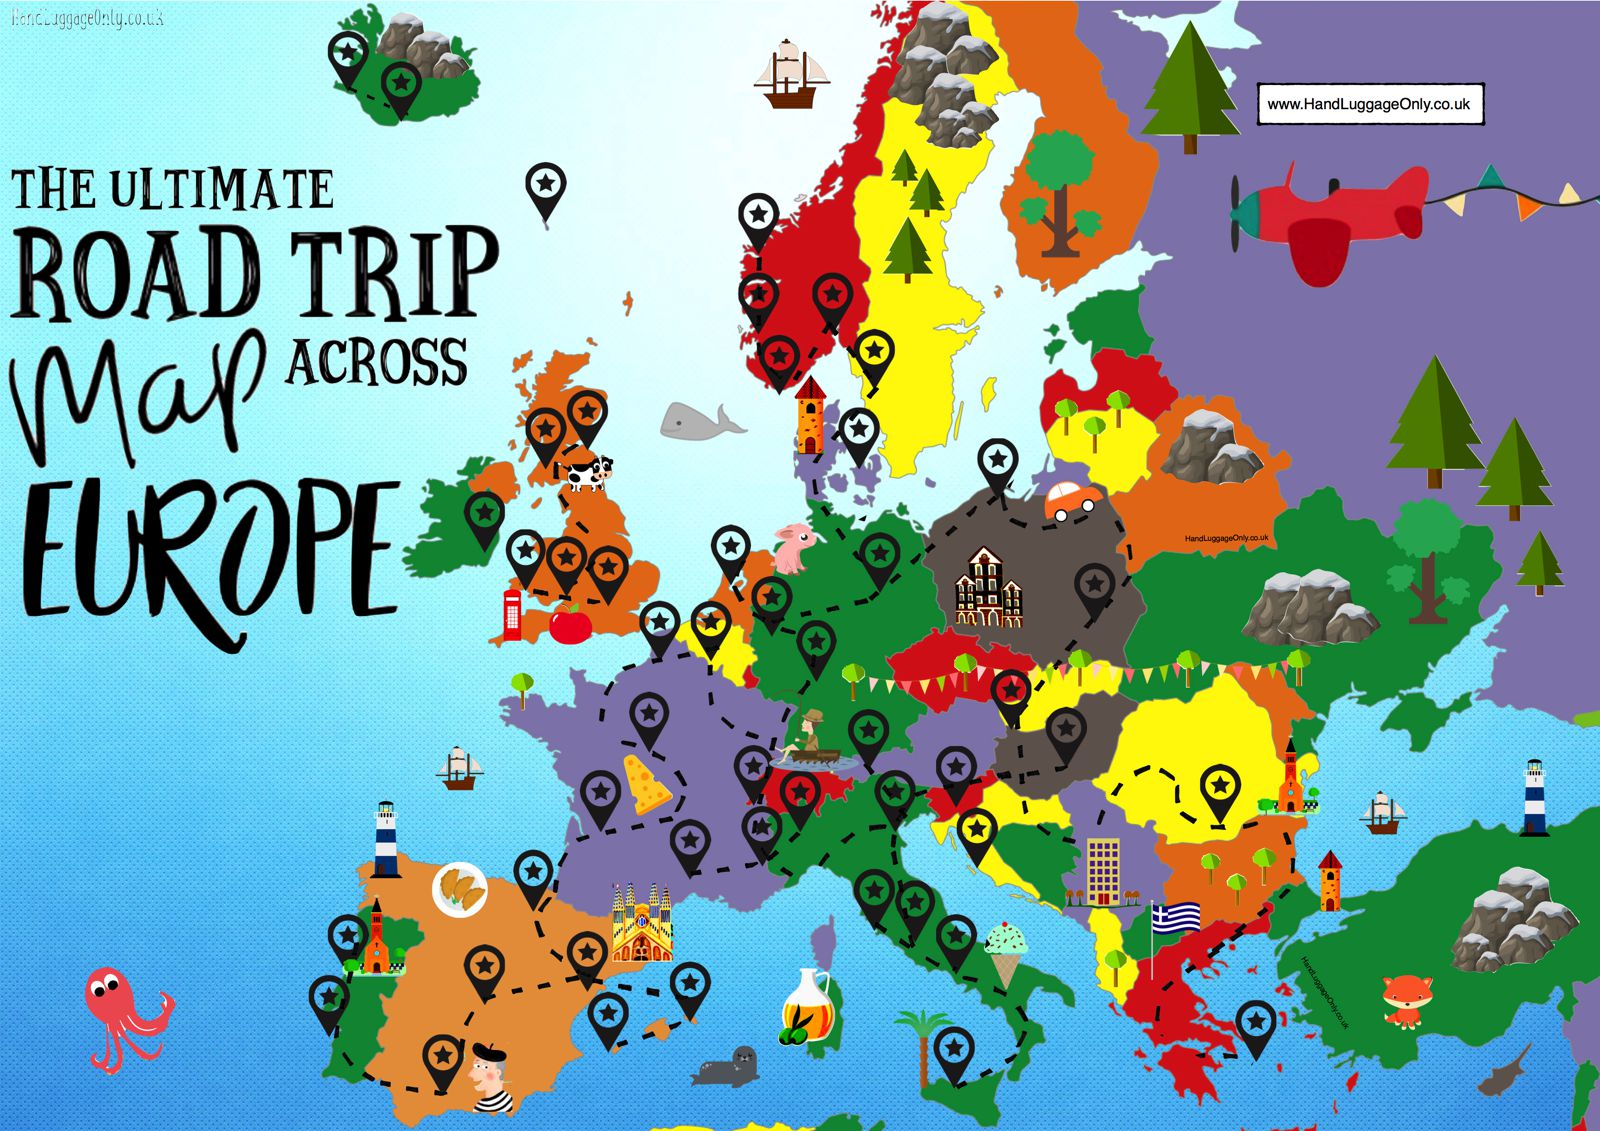 The Complete Europe Road Trip Map: 49 Places To Visit And Things